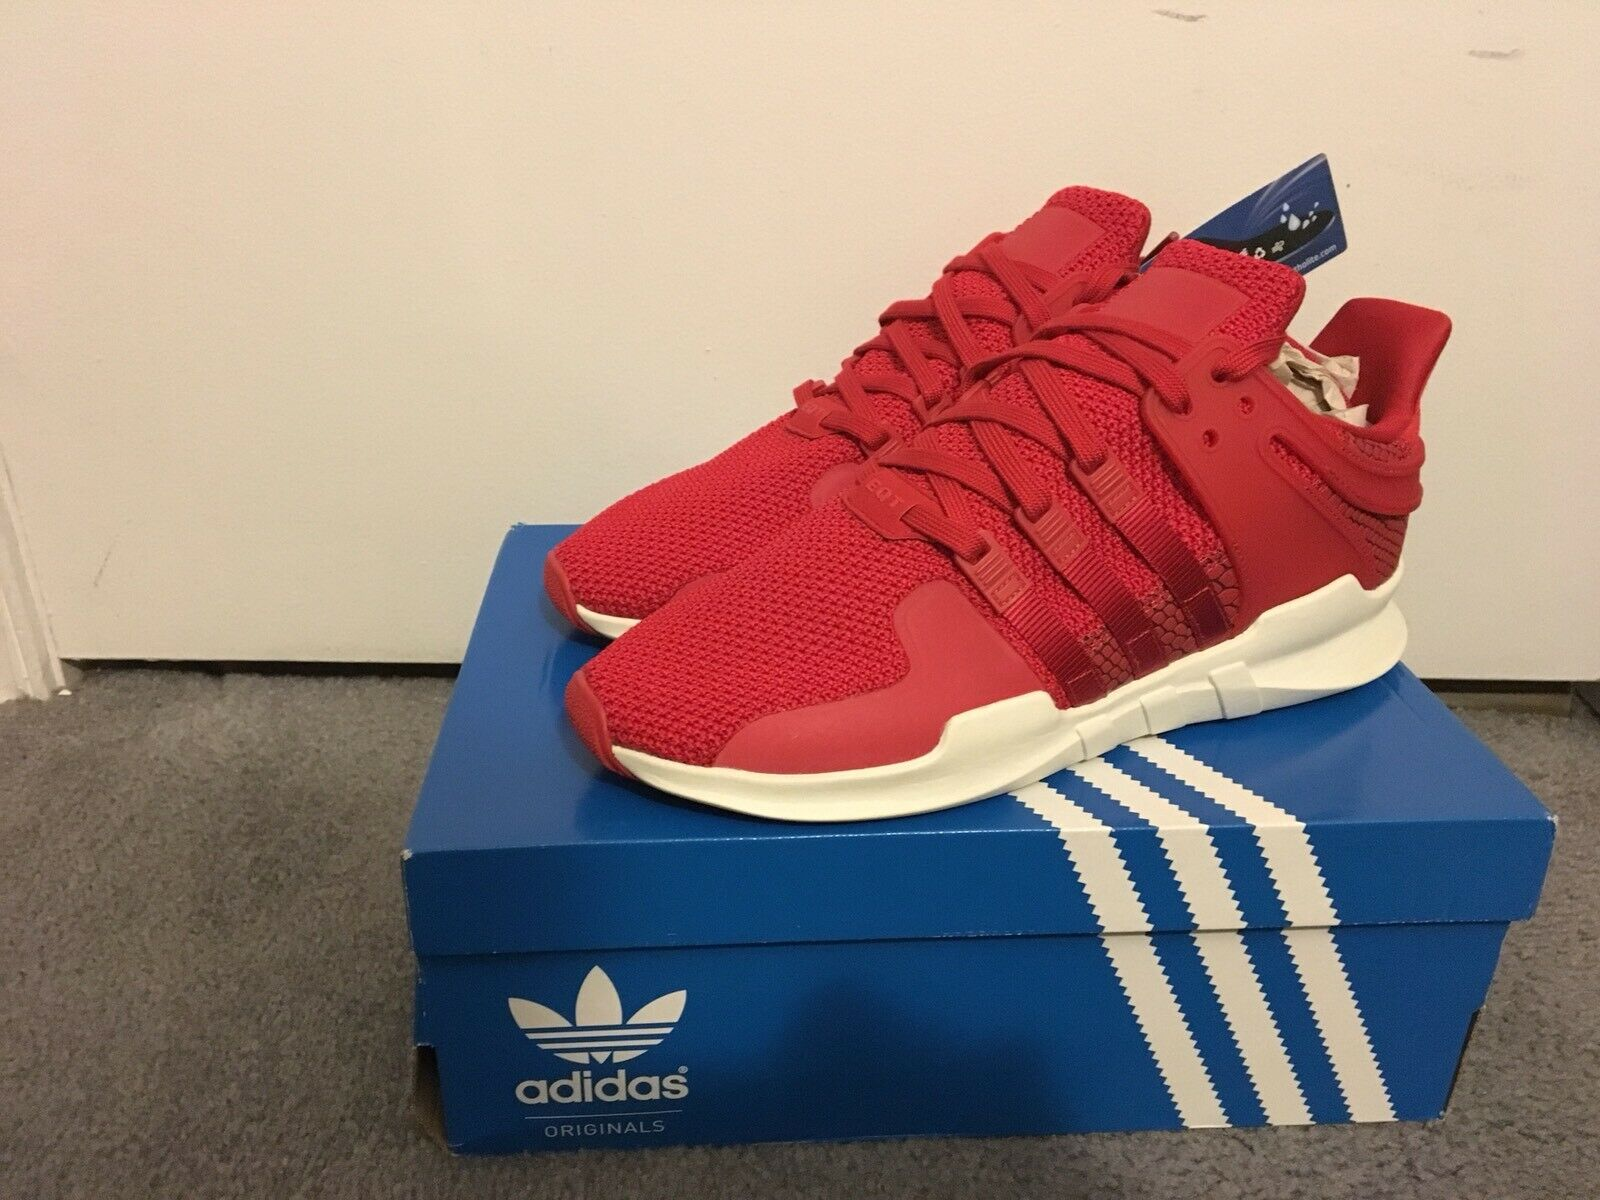 Adidas Men's EQT Support ADV shoes 91-16  Size 10.5 10.5 10.5 Red bf68e4